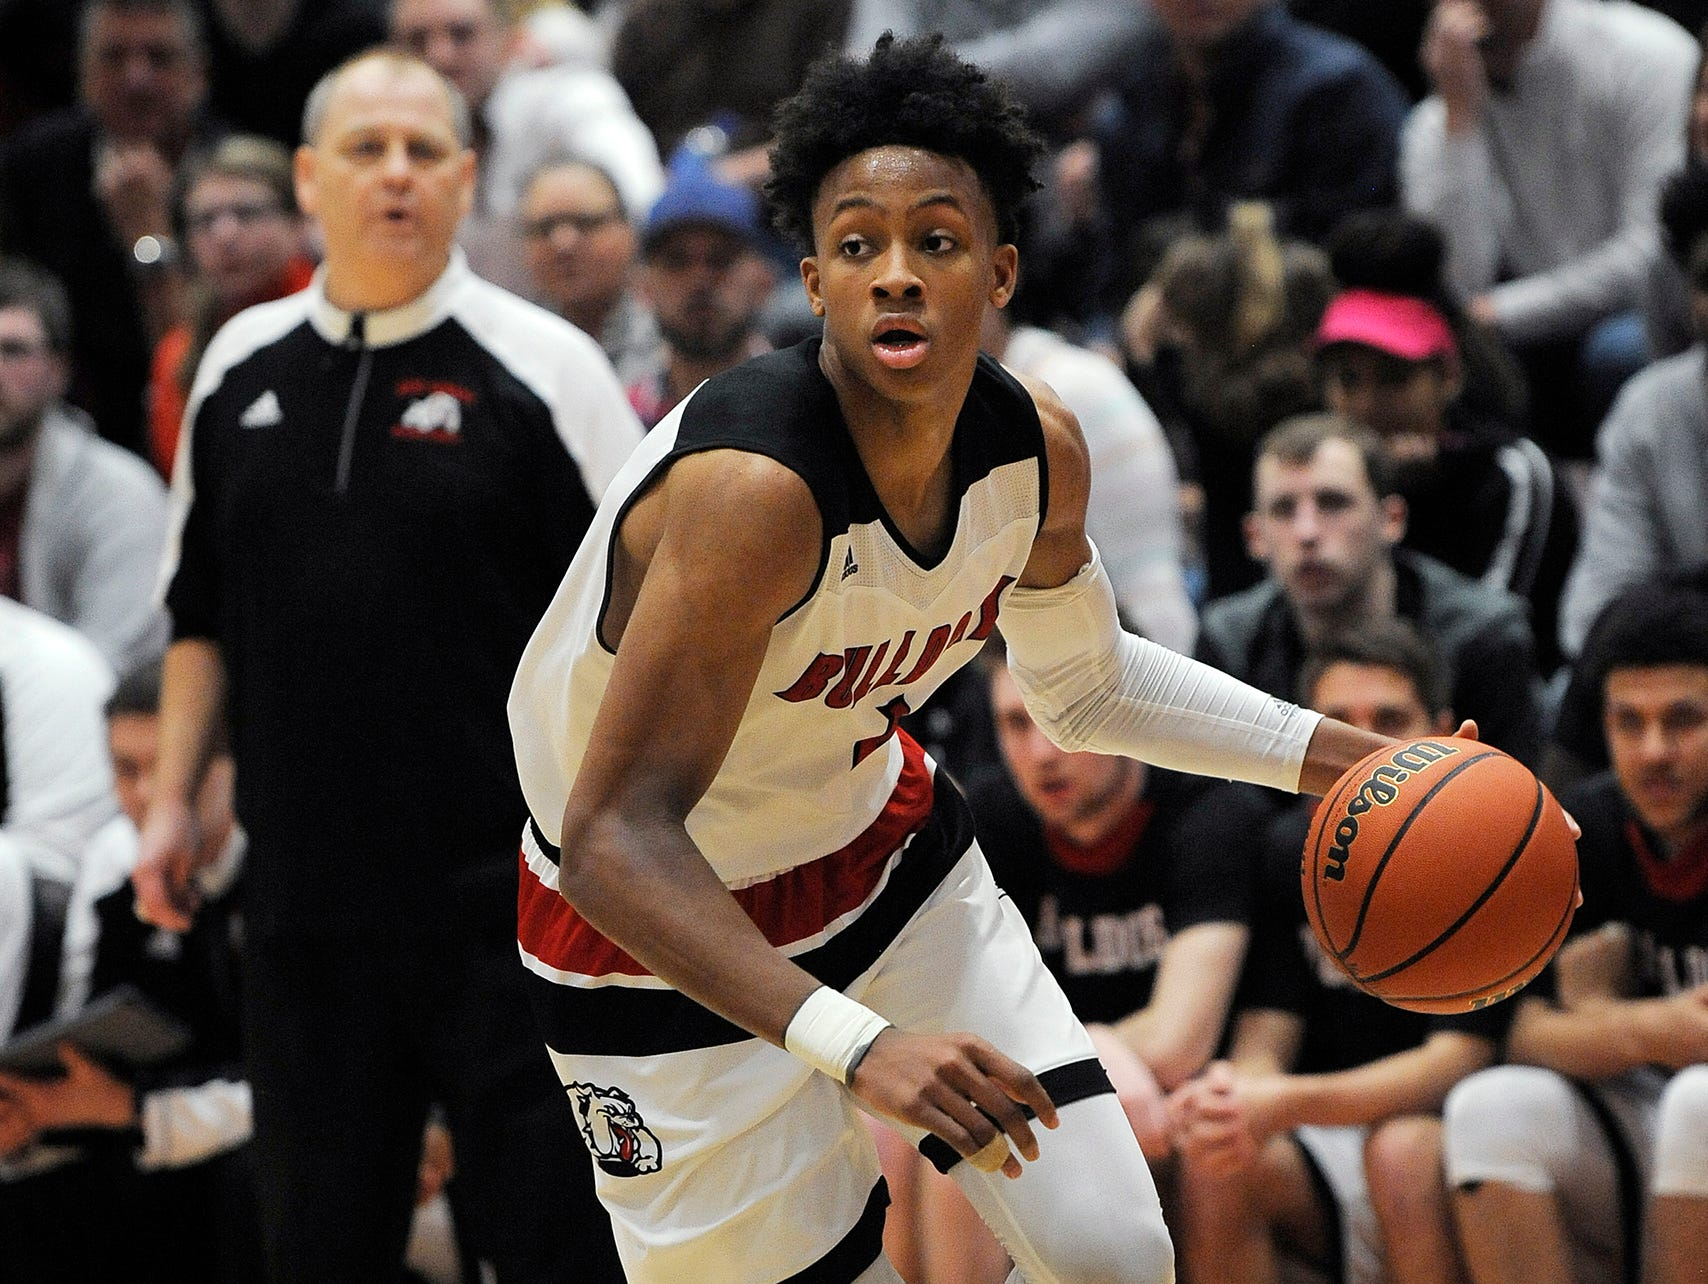 New Albany head coach Jim Shannon (in back) watches as Romeo Langford (1) drives against Providence on Friday at New Albany High School. New Albany won 55-40.